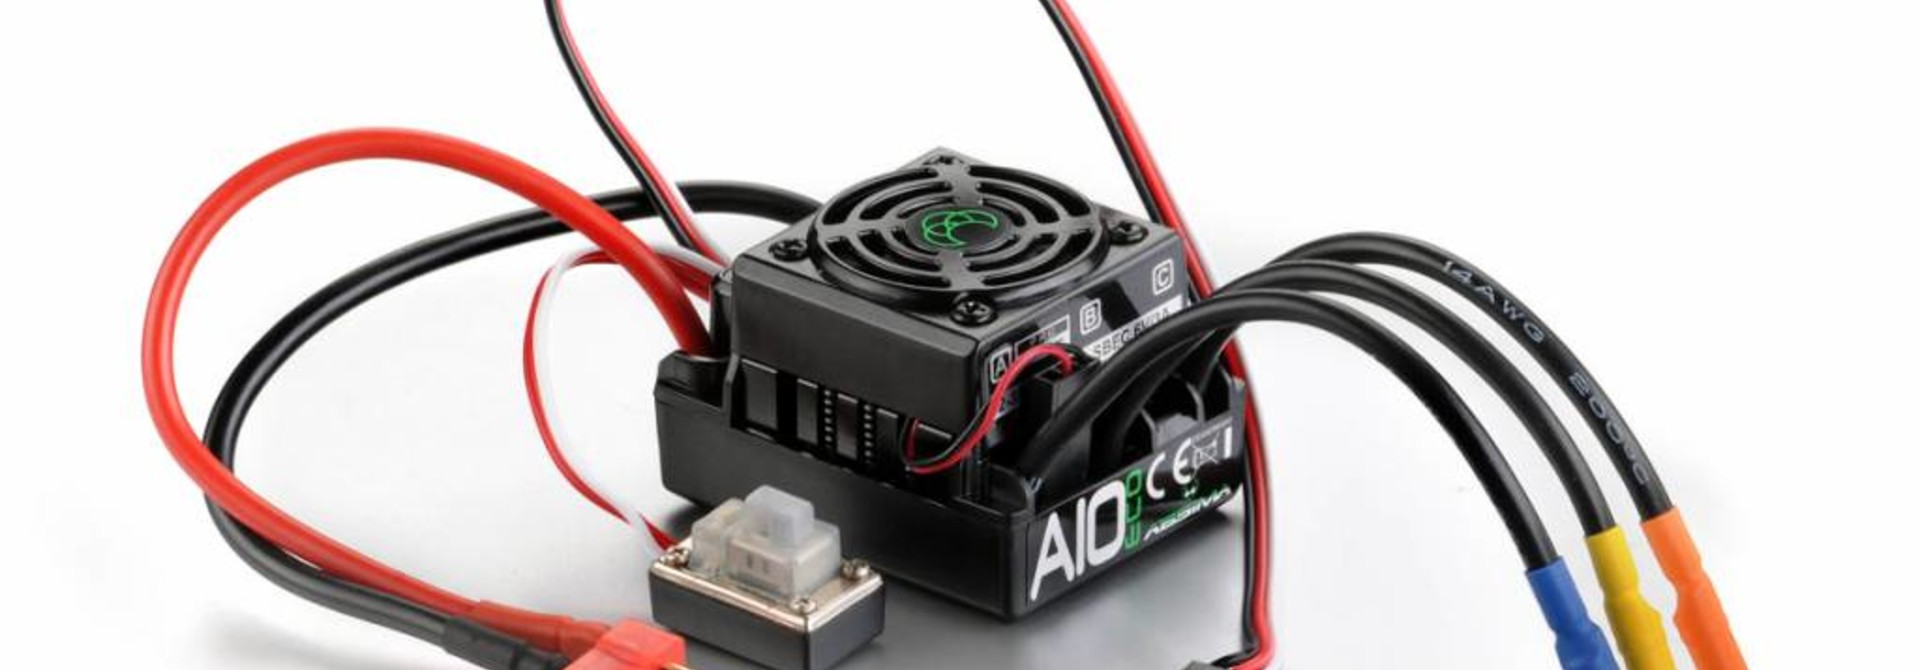 """Brushless ESC """"Thrust A10 ECO"""" 50A 1:10 waterproof"""